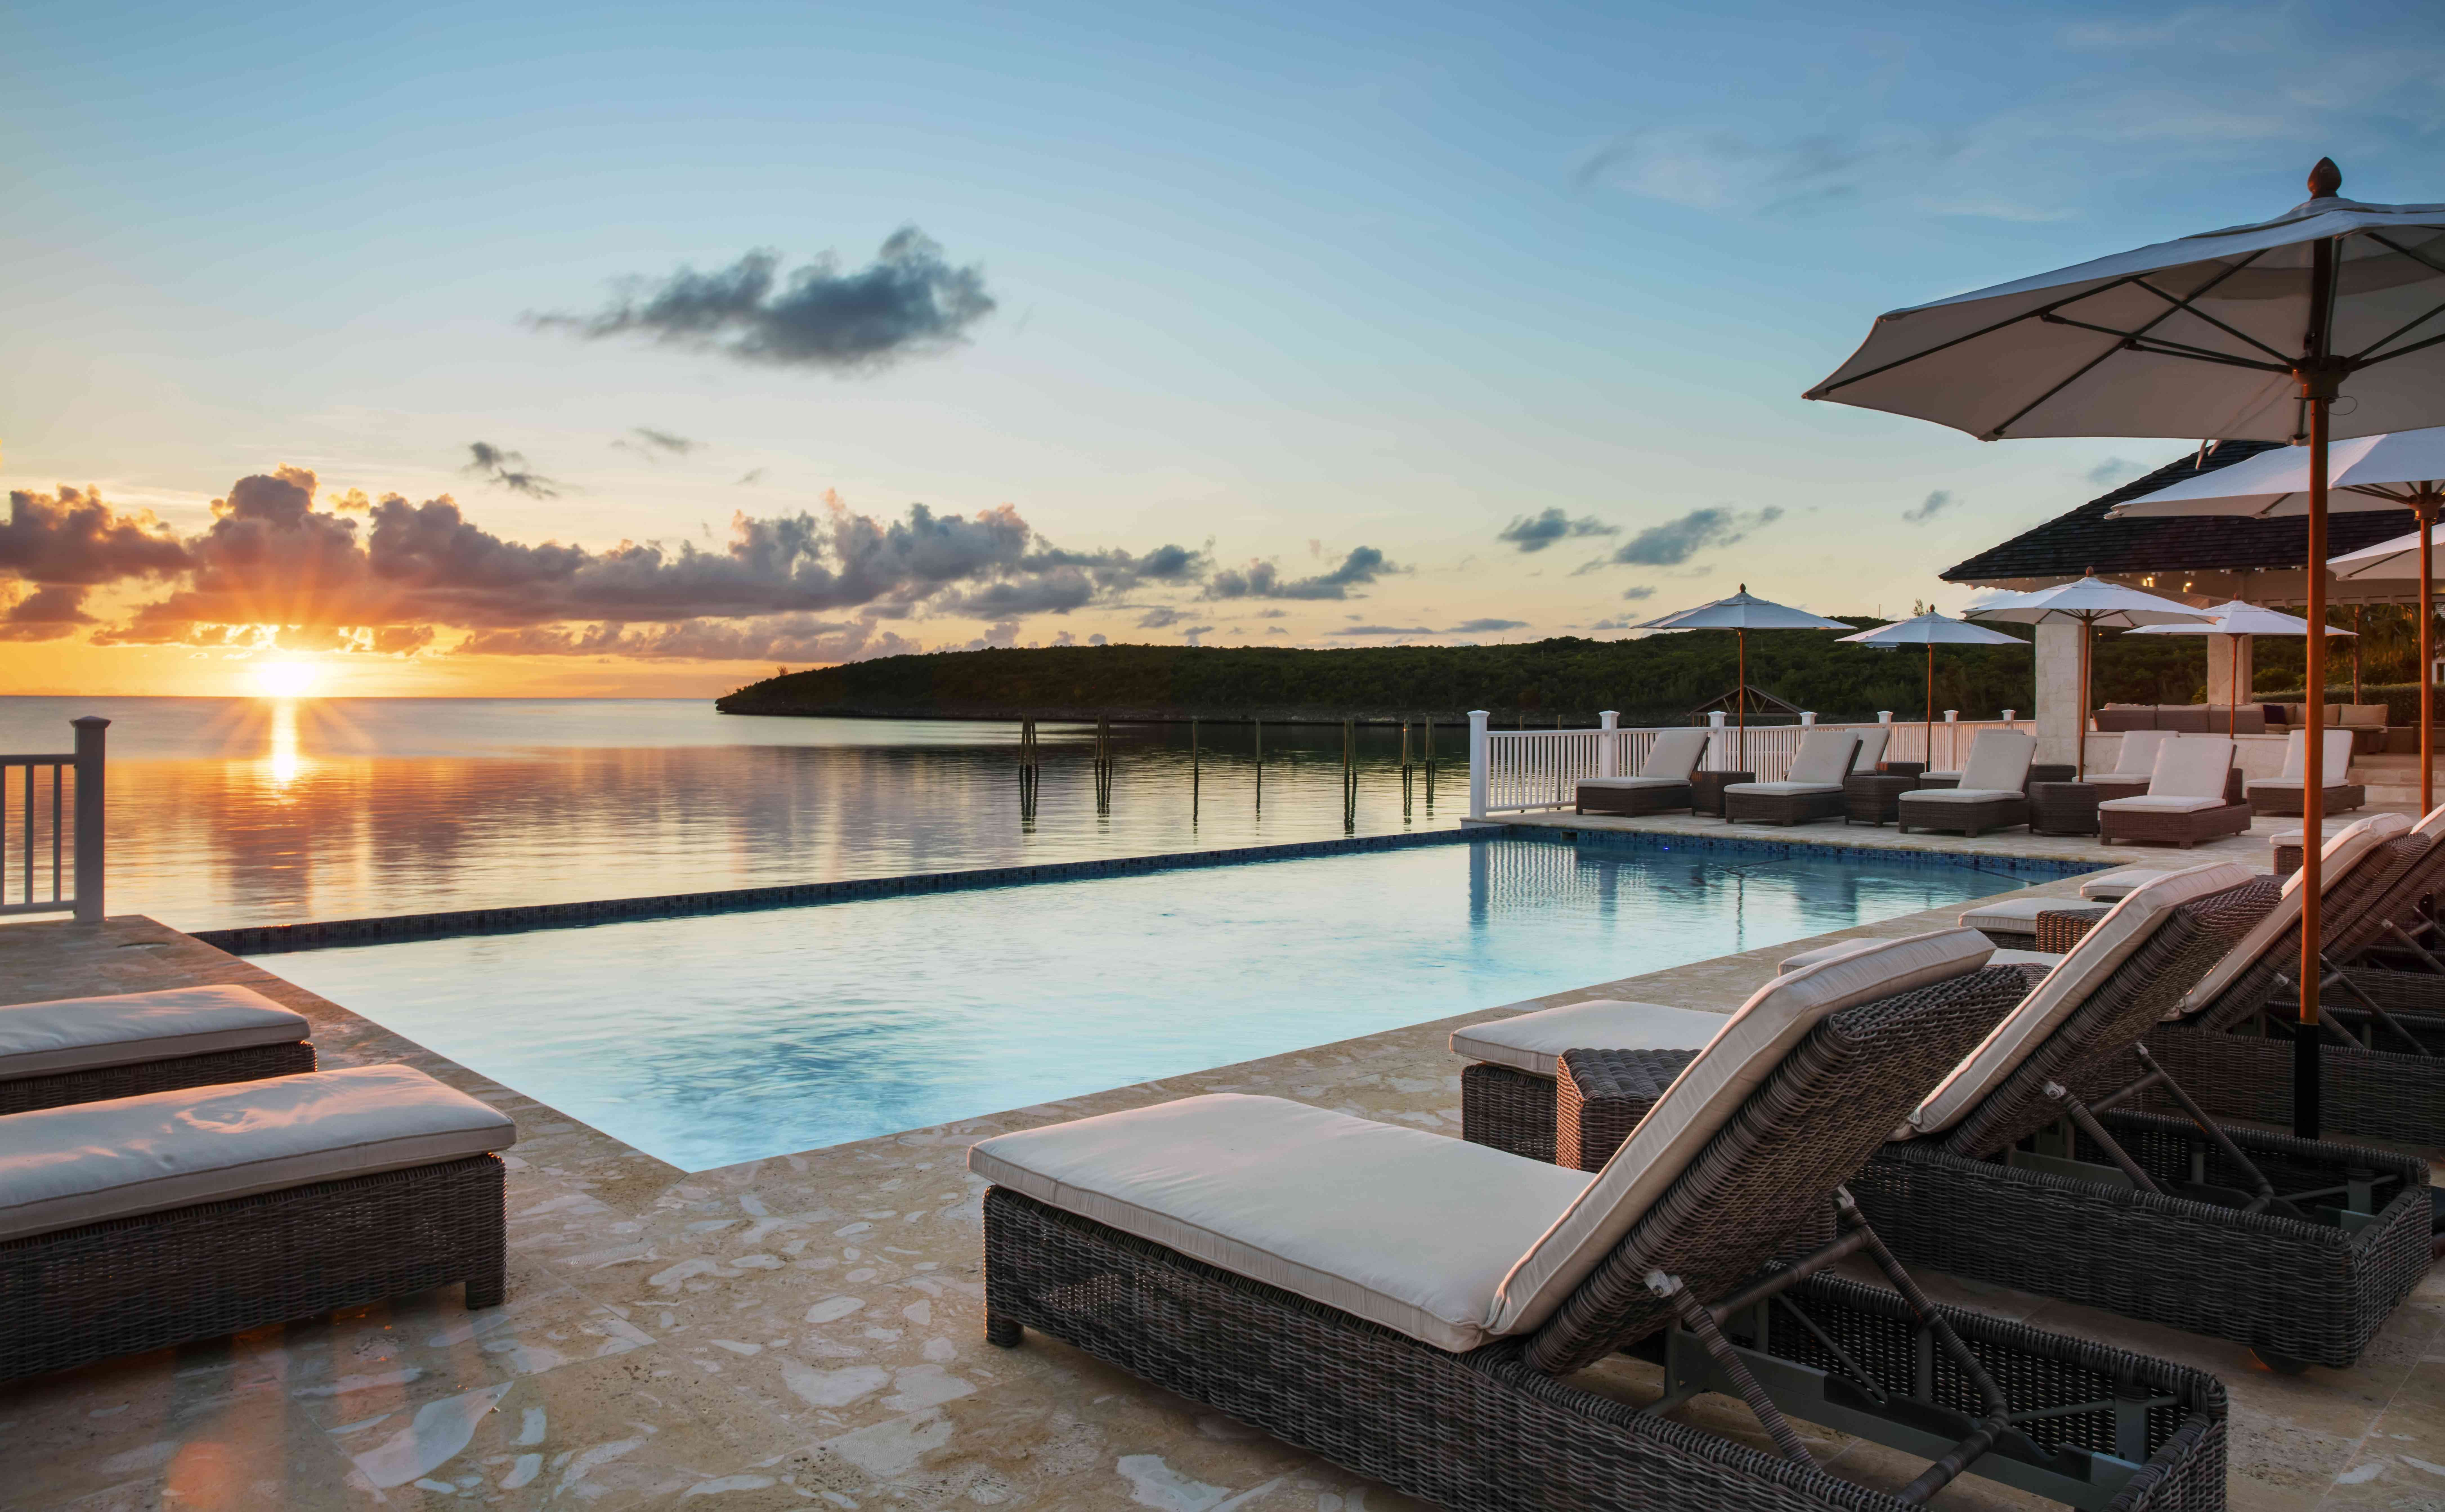 The pool at French Leave Eleuthera, a resort on Eleuthera, Bahamas